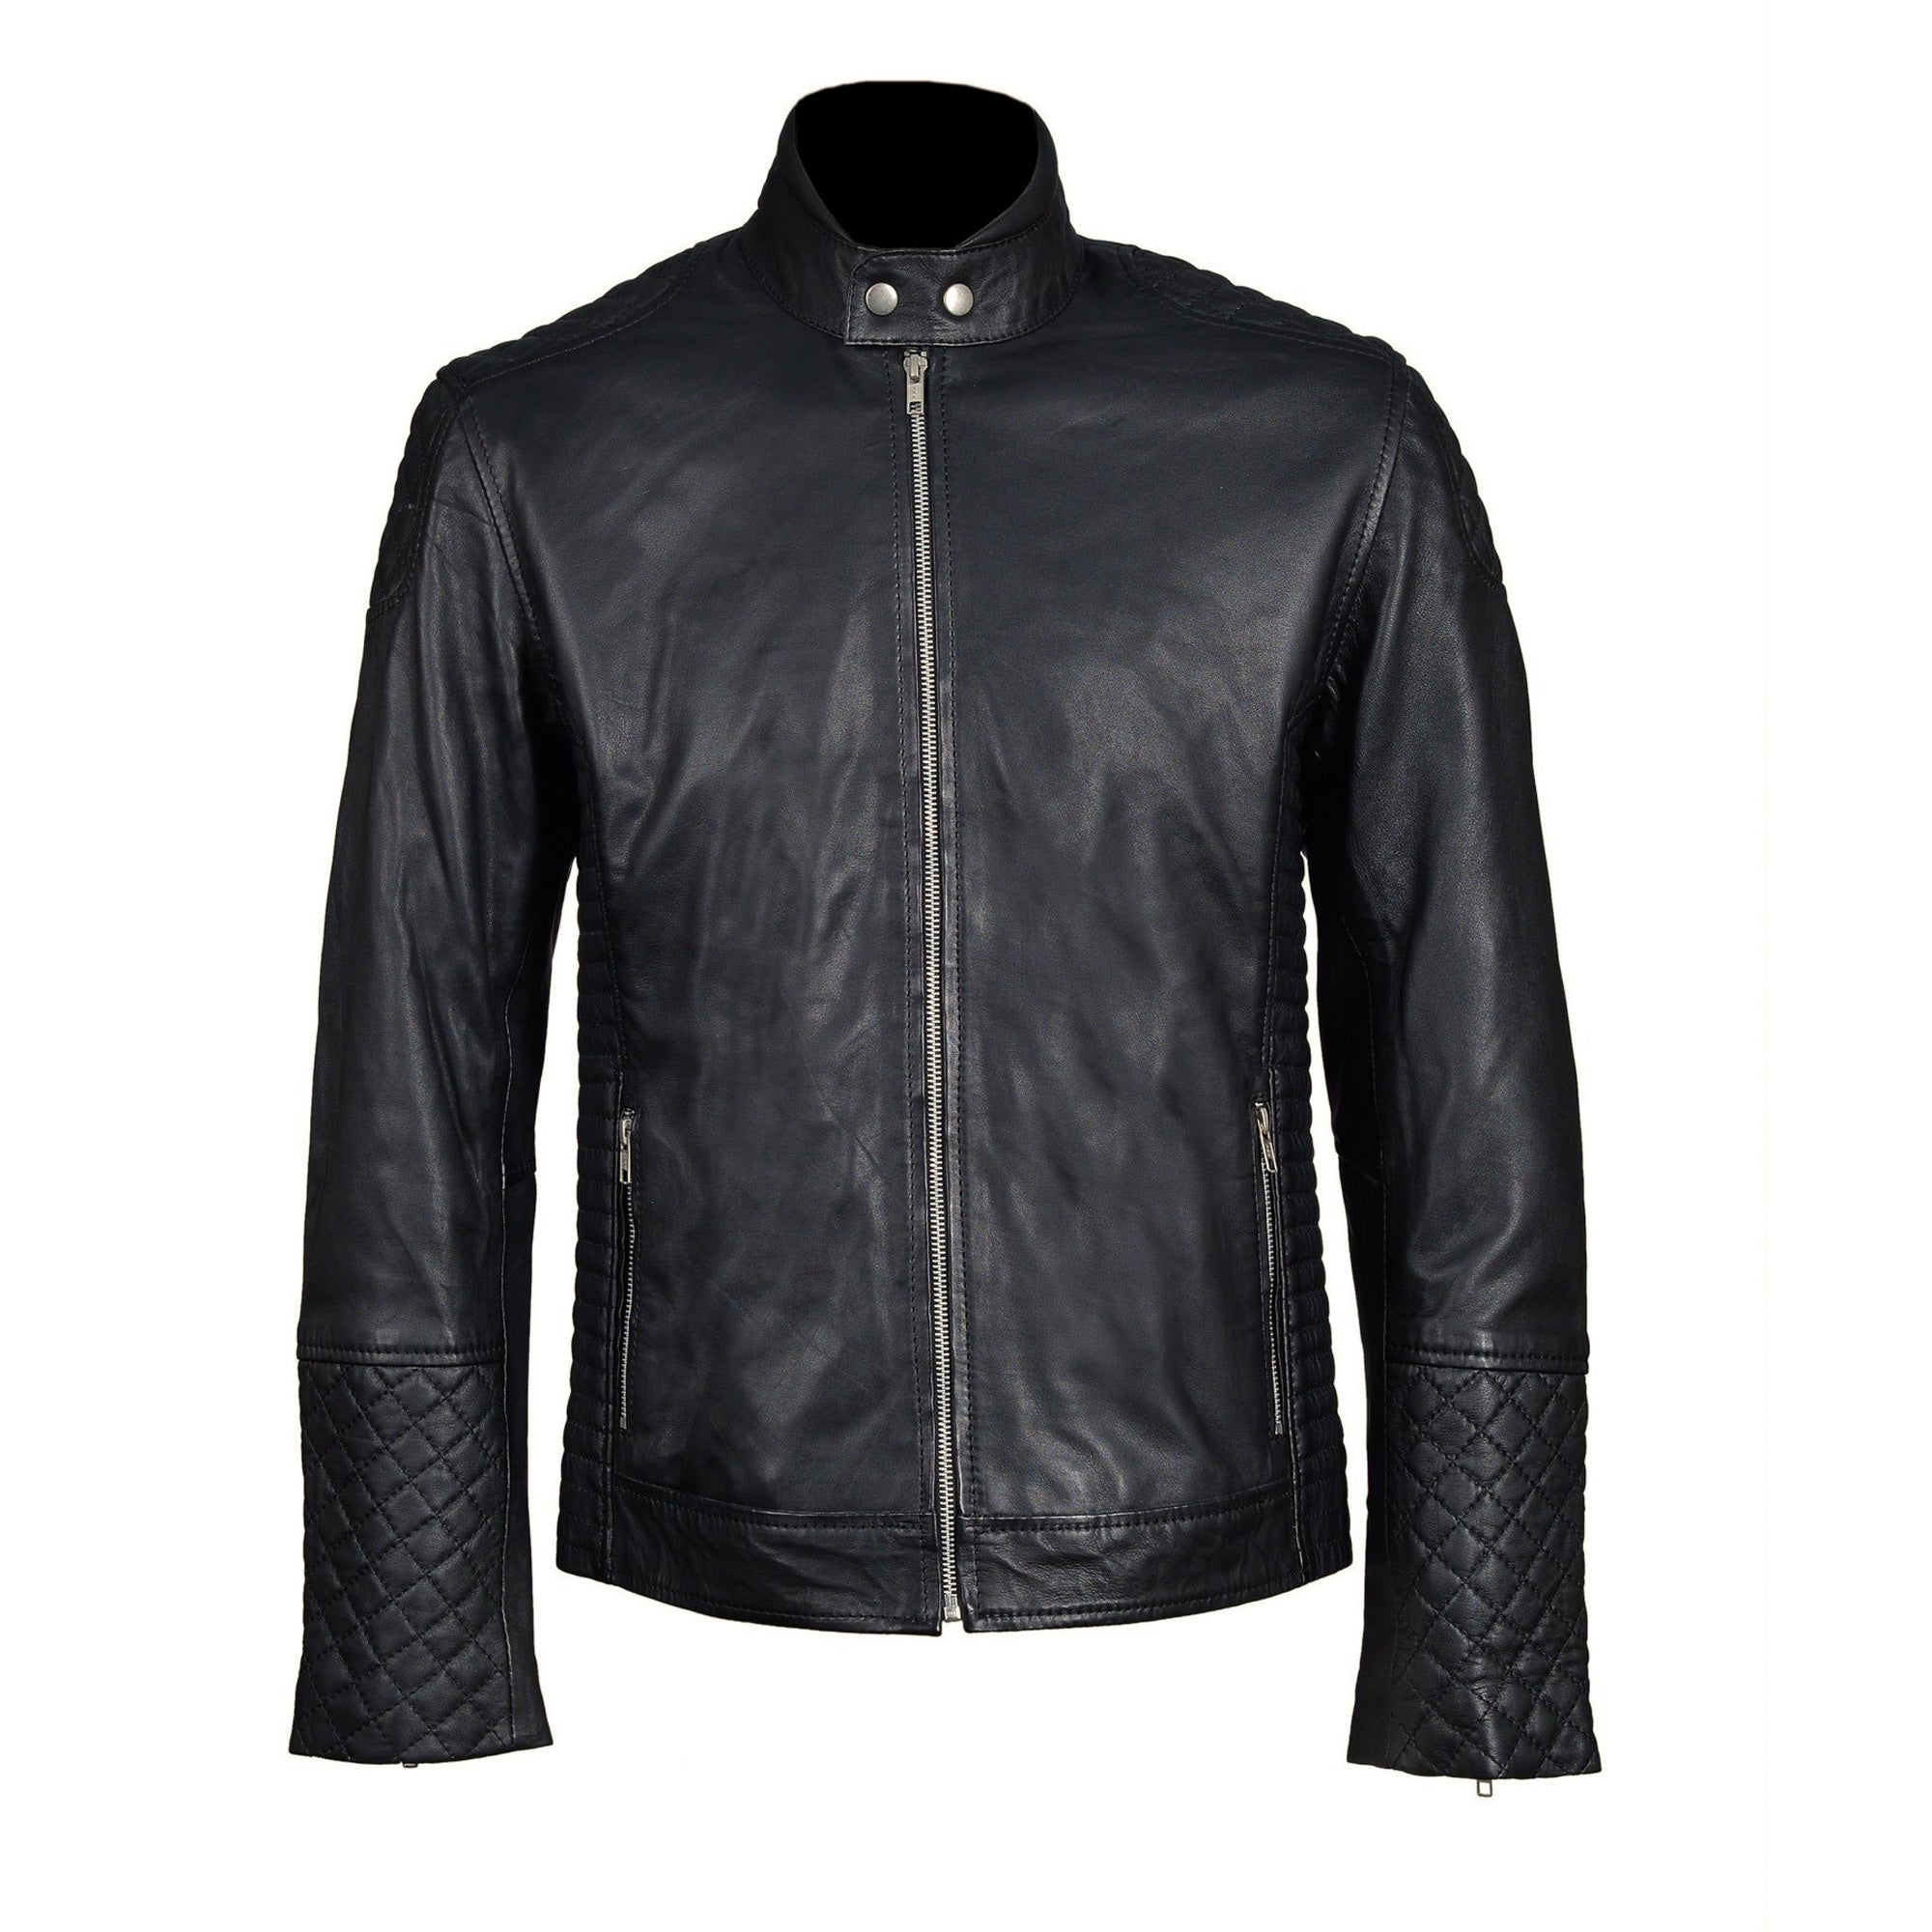 Tyrons moto style leather jacket with quilted detailing